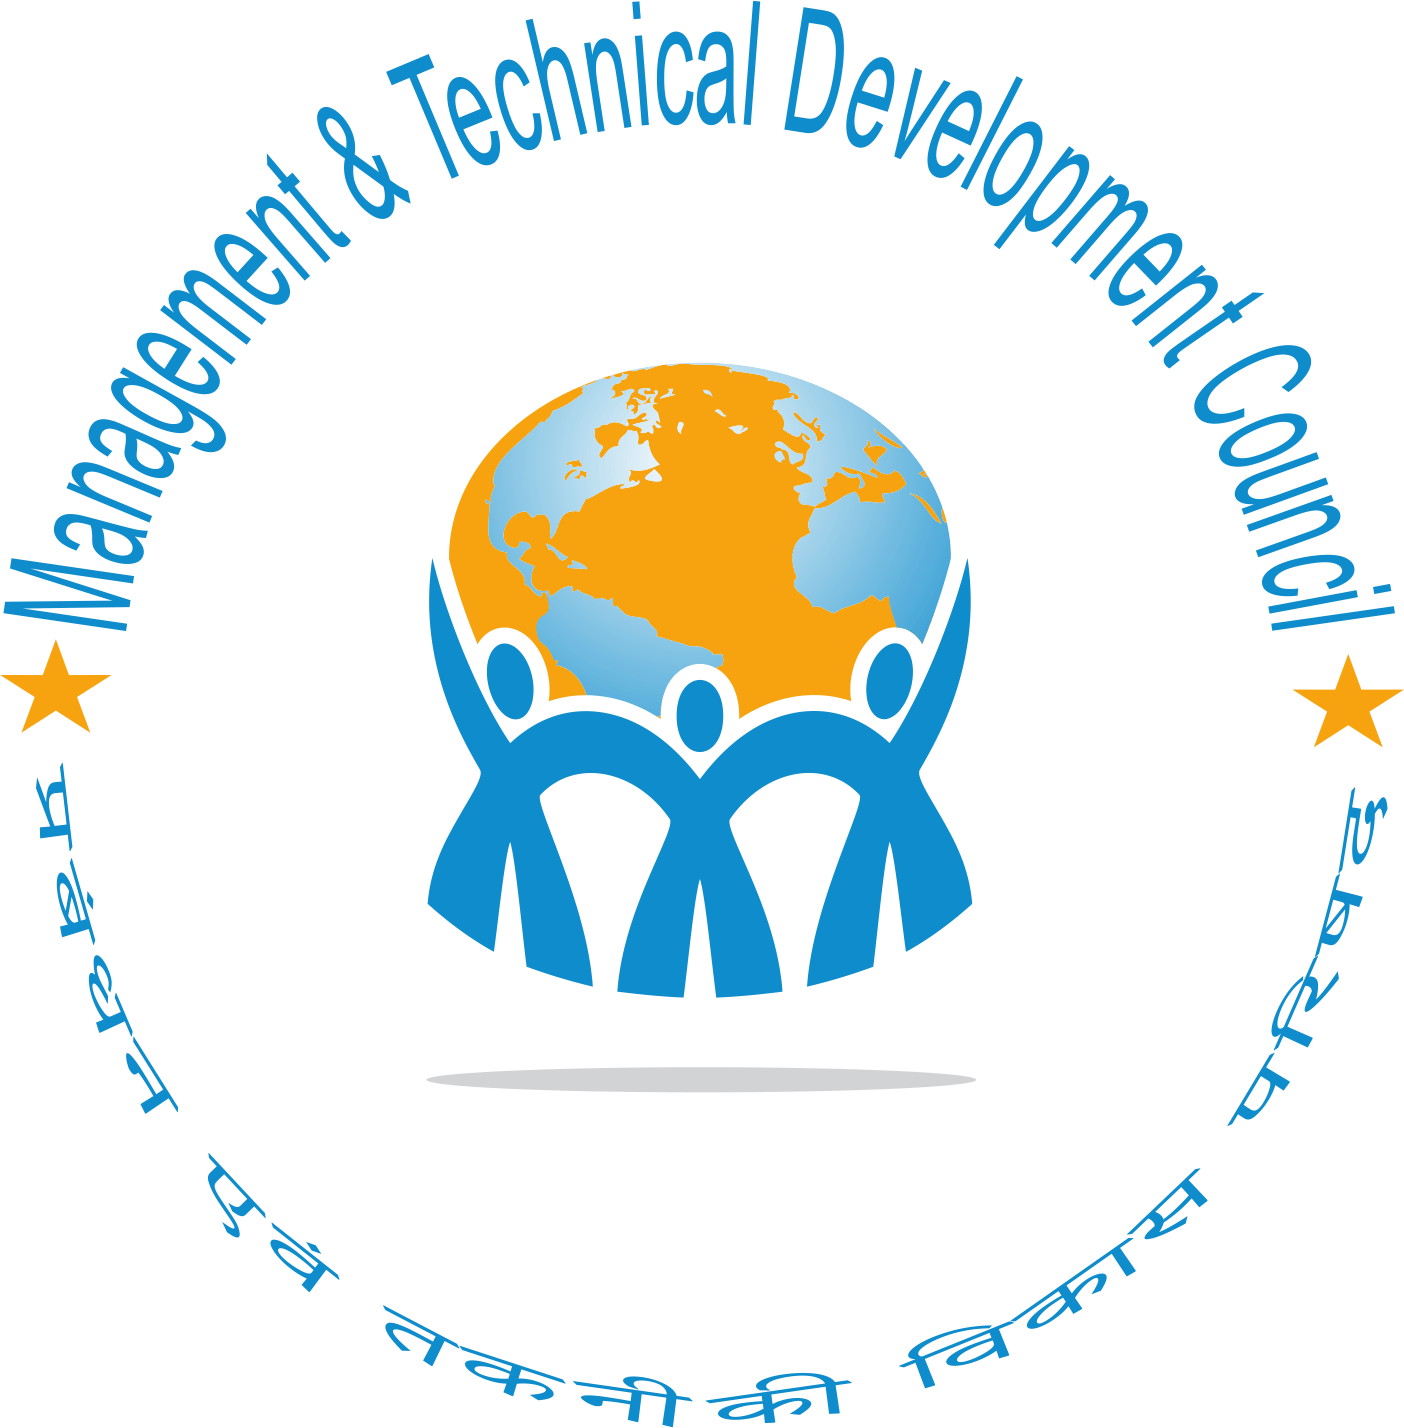 Management & Technical Development Council- MTDC